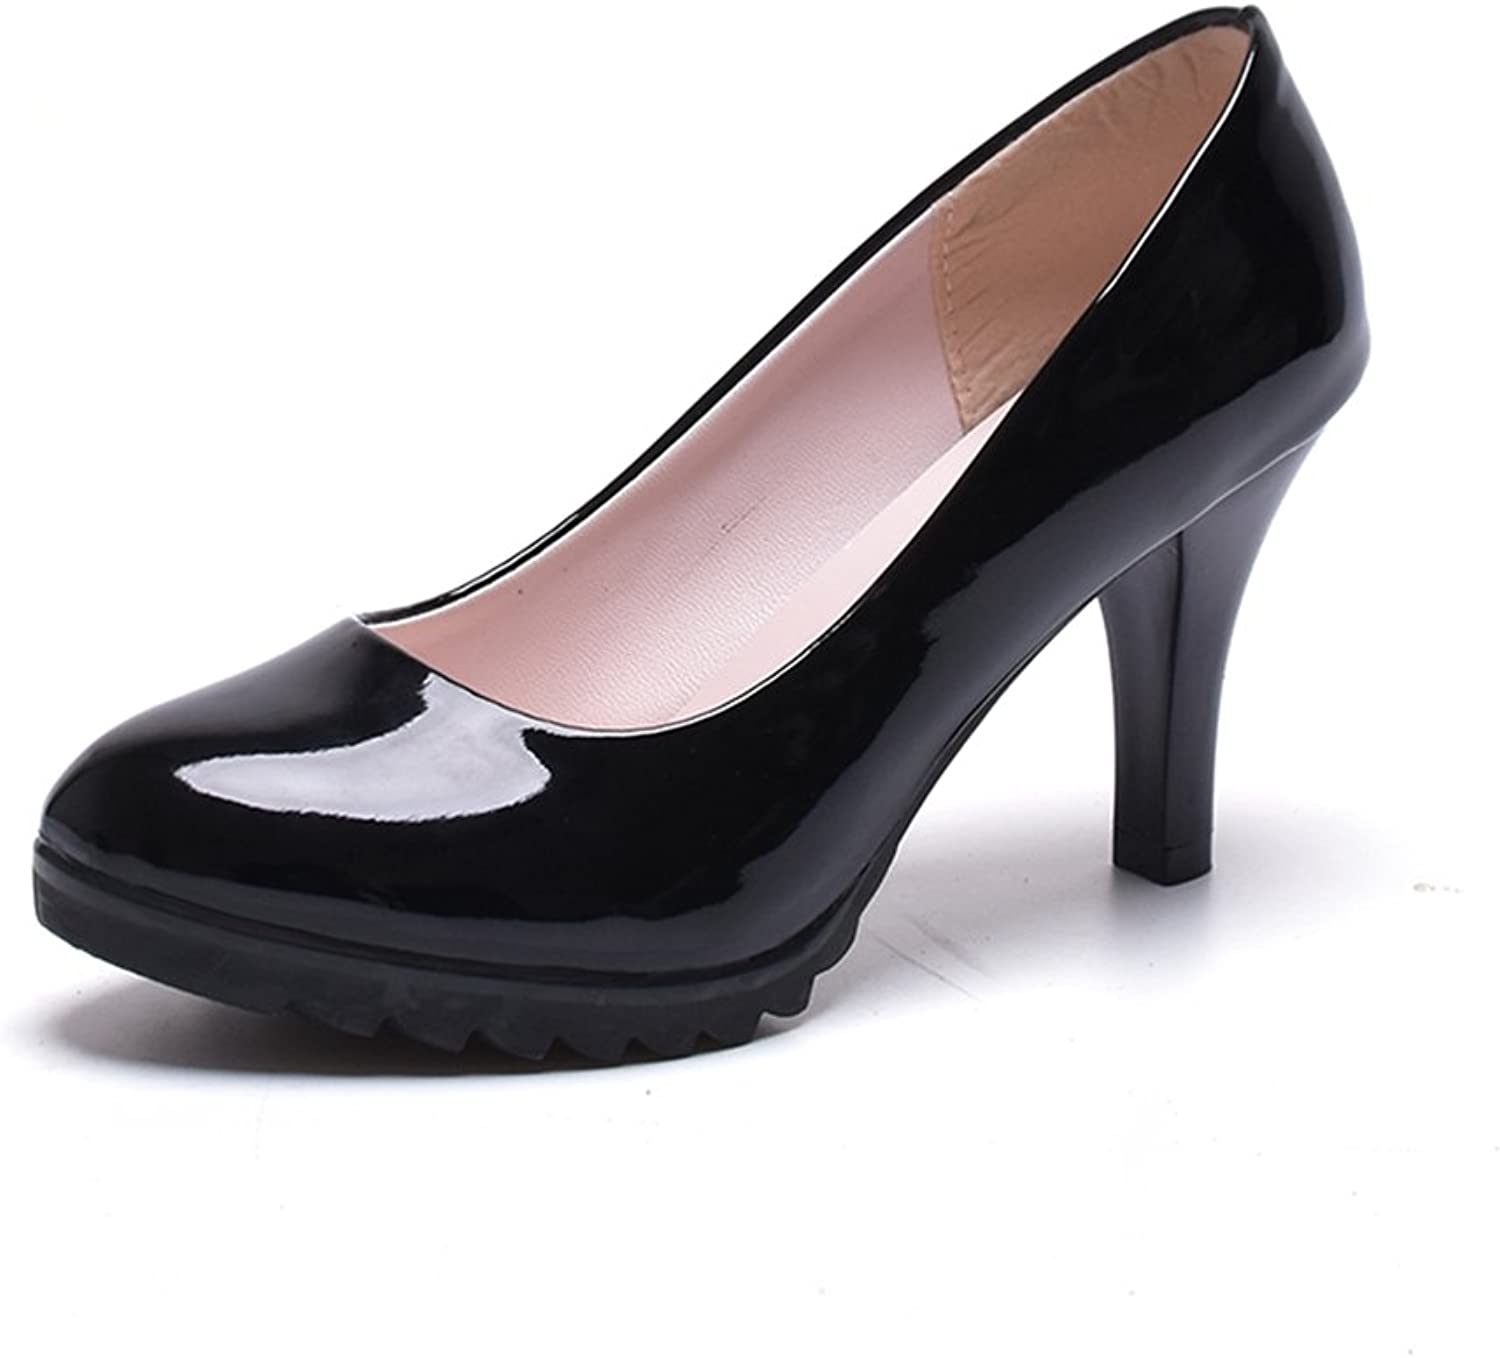 Exing Women's shoes Leather Summer Fall shoes Light up shoes Heels Stiletto Heel Platform Heel for Casual Dress Party